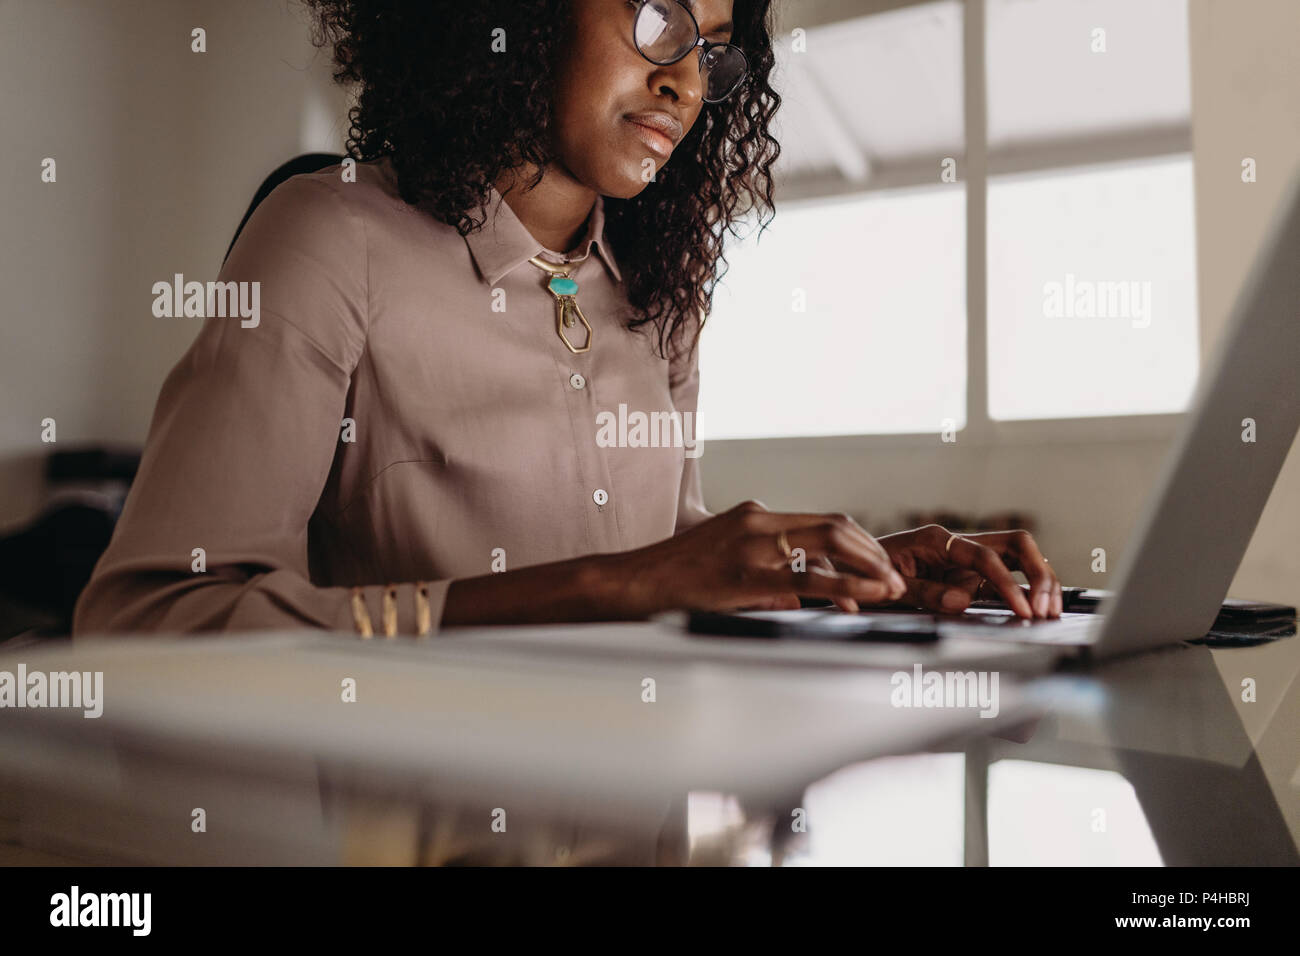 Businesswoman working on laptop computer from home. Woman entrepreneur sitting at home working on laptop with business documents on the table. - Stock Image